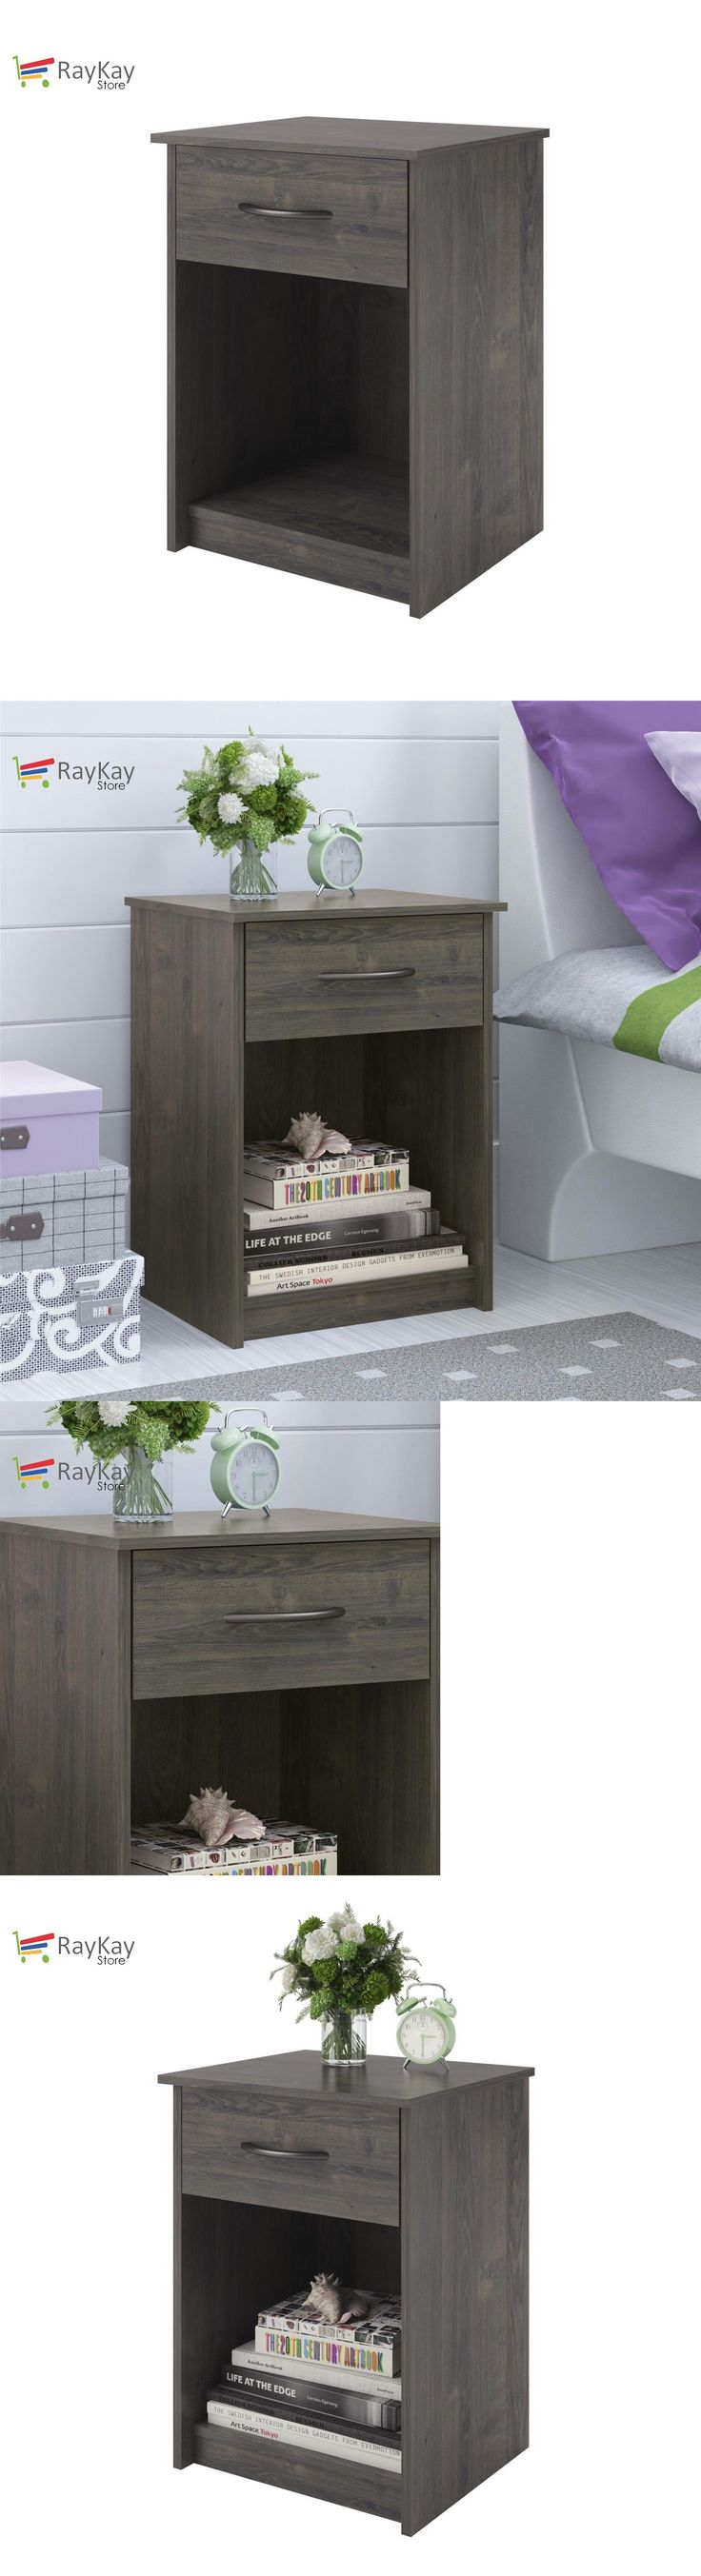 Nightstands 38199: Nightstand Set Of 2 Gray End Table Bedroom Bedside Furniture Shelf Drawer New -> BUY IT NOW ONLY: $63.98 on eBay!